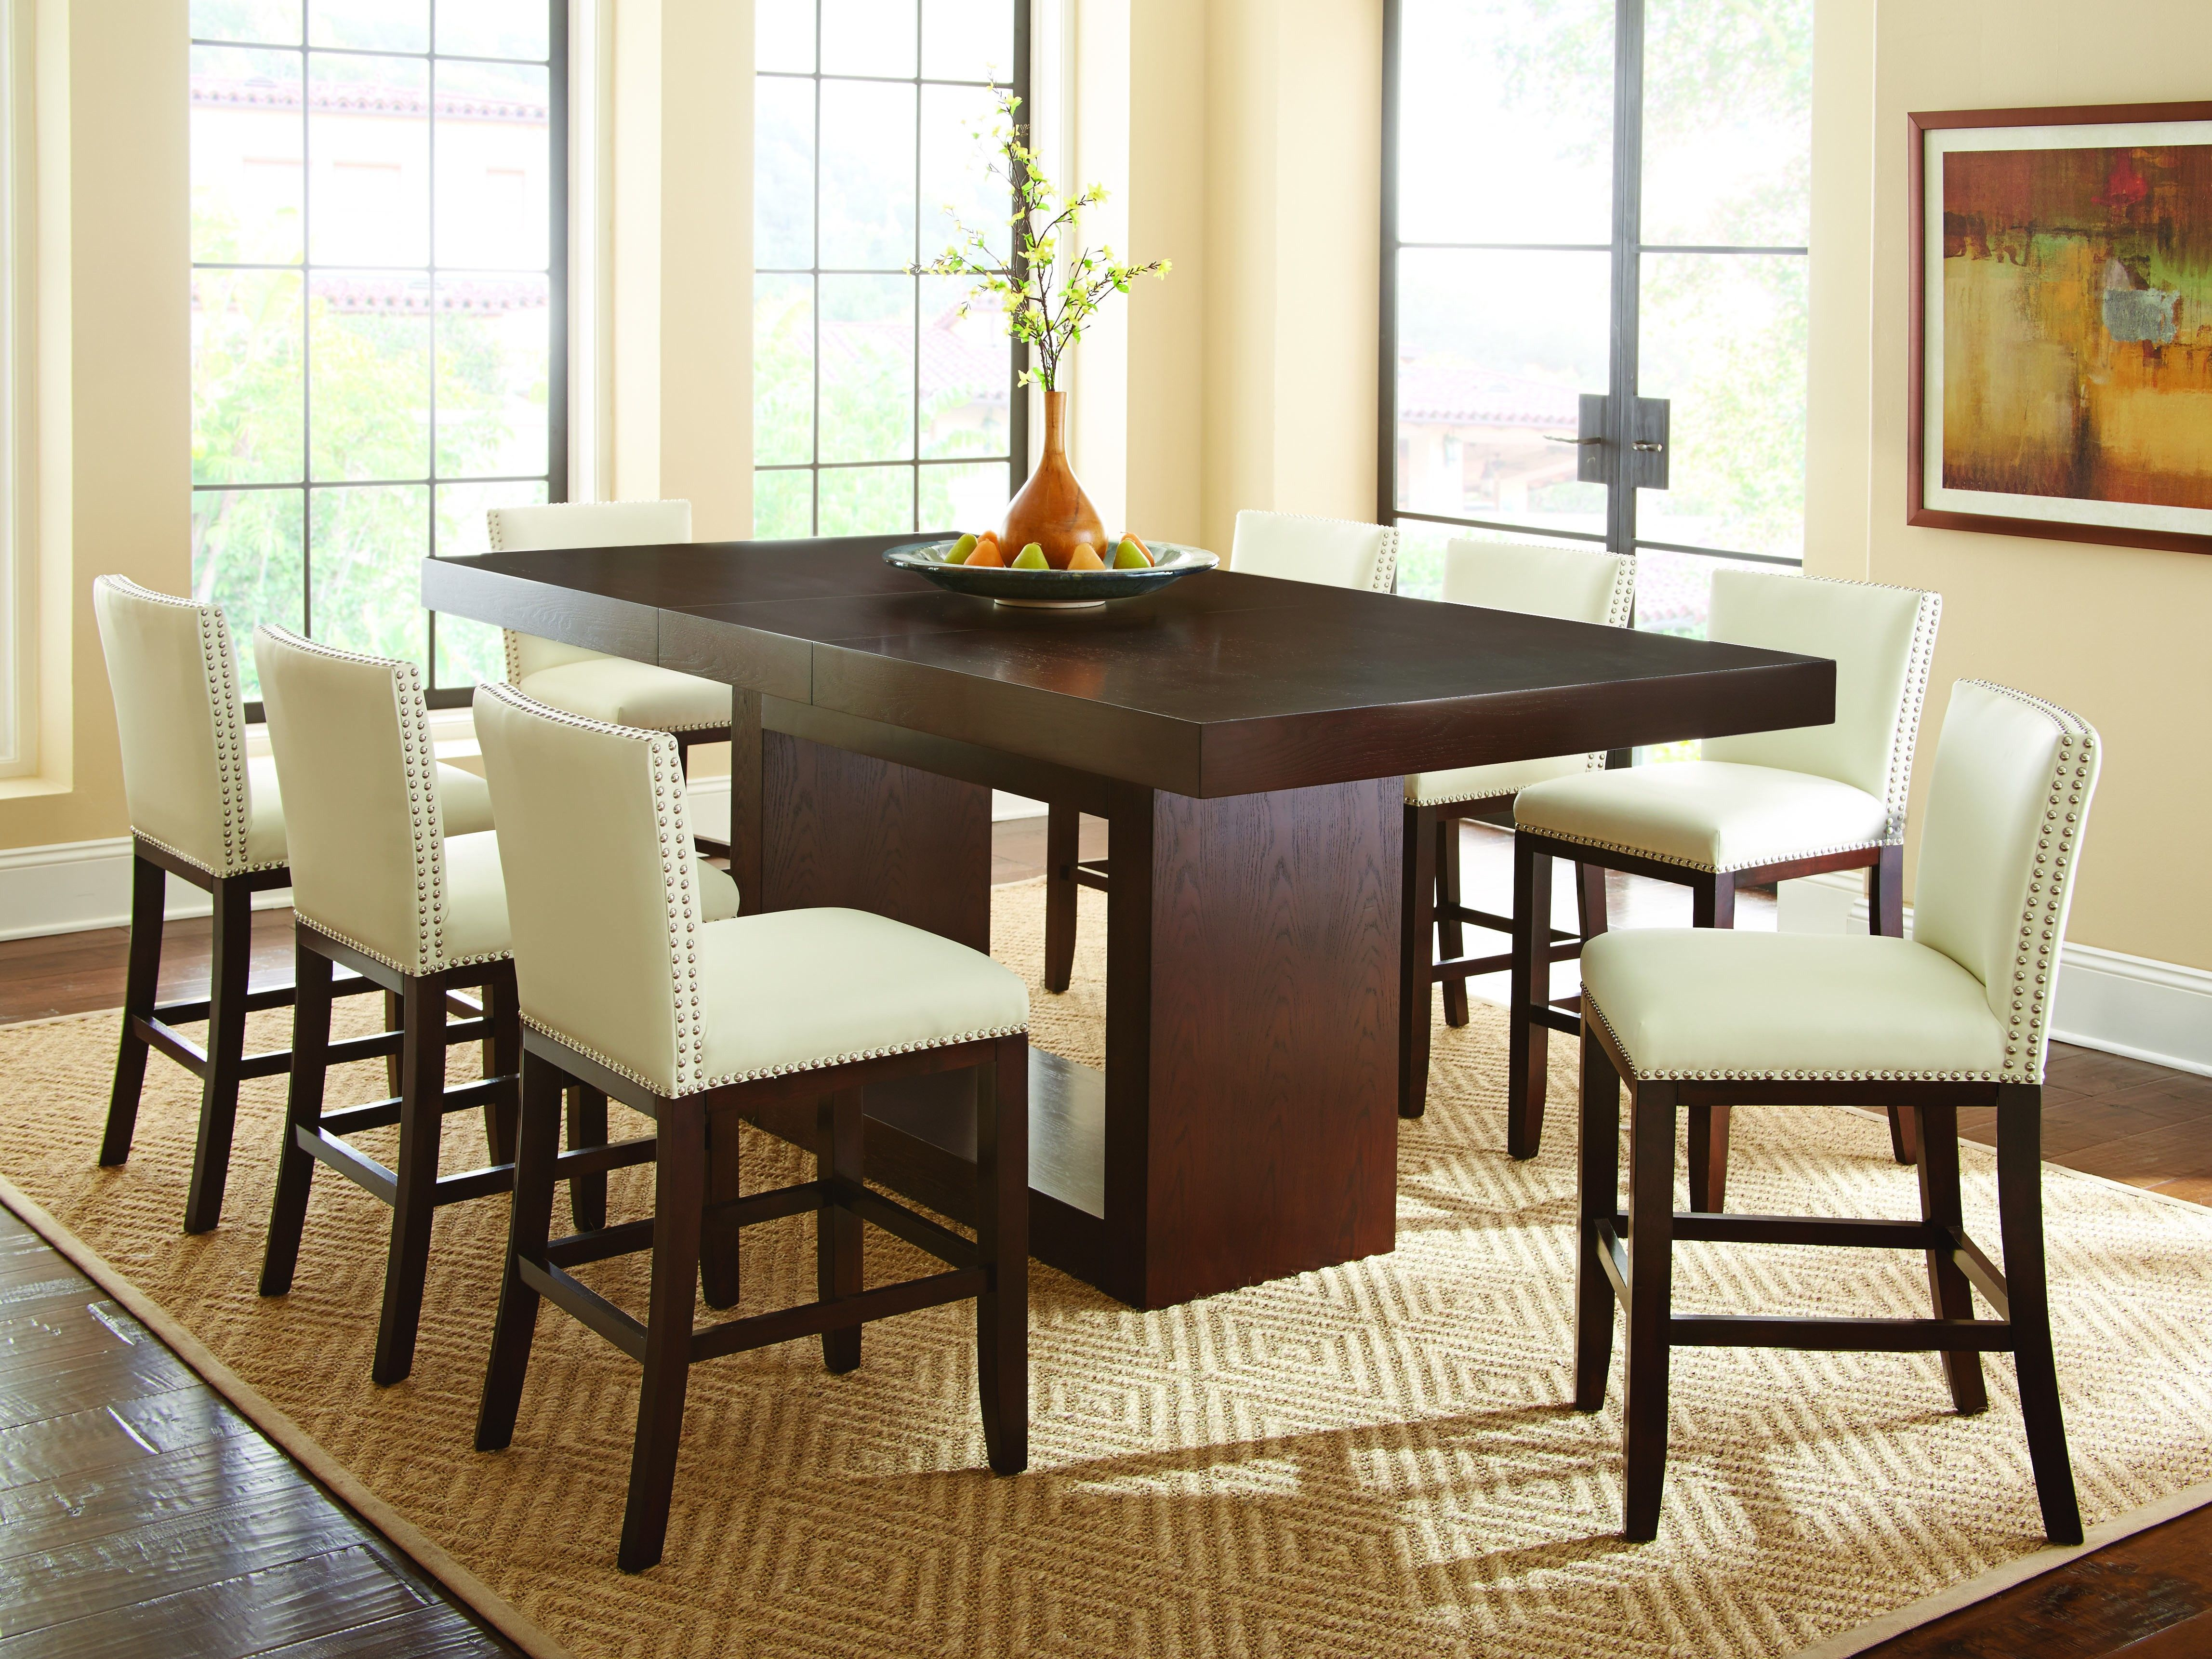 Antonio With Tiffany Counter Chairs  Steve Silver Co Unique Steve Silver Dining Room Set Decorating Design